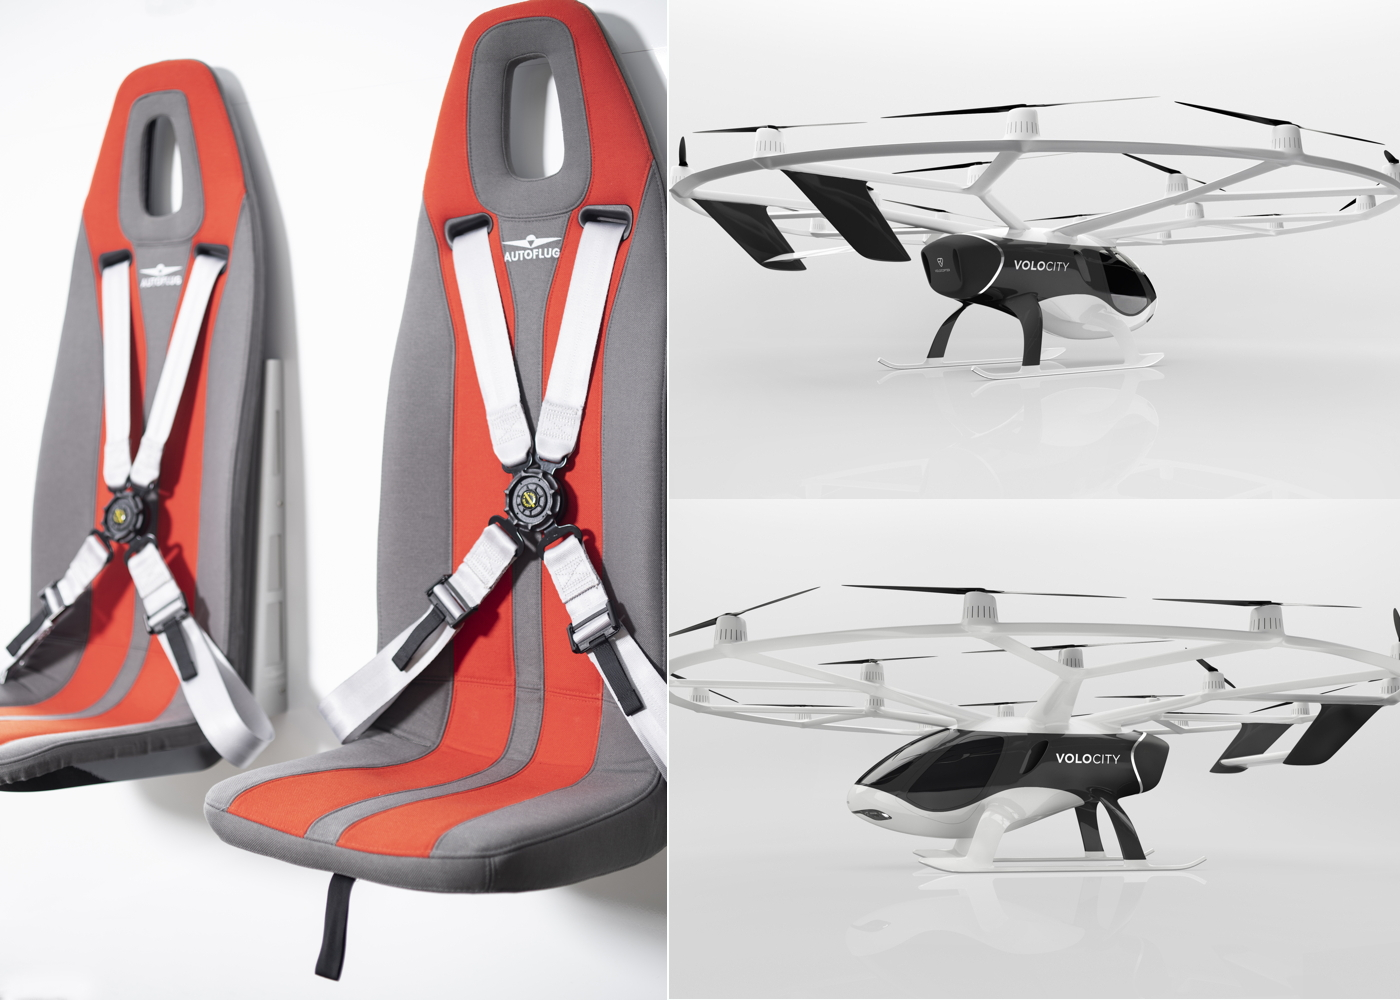 Autoflug seats with VoloCity